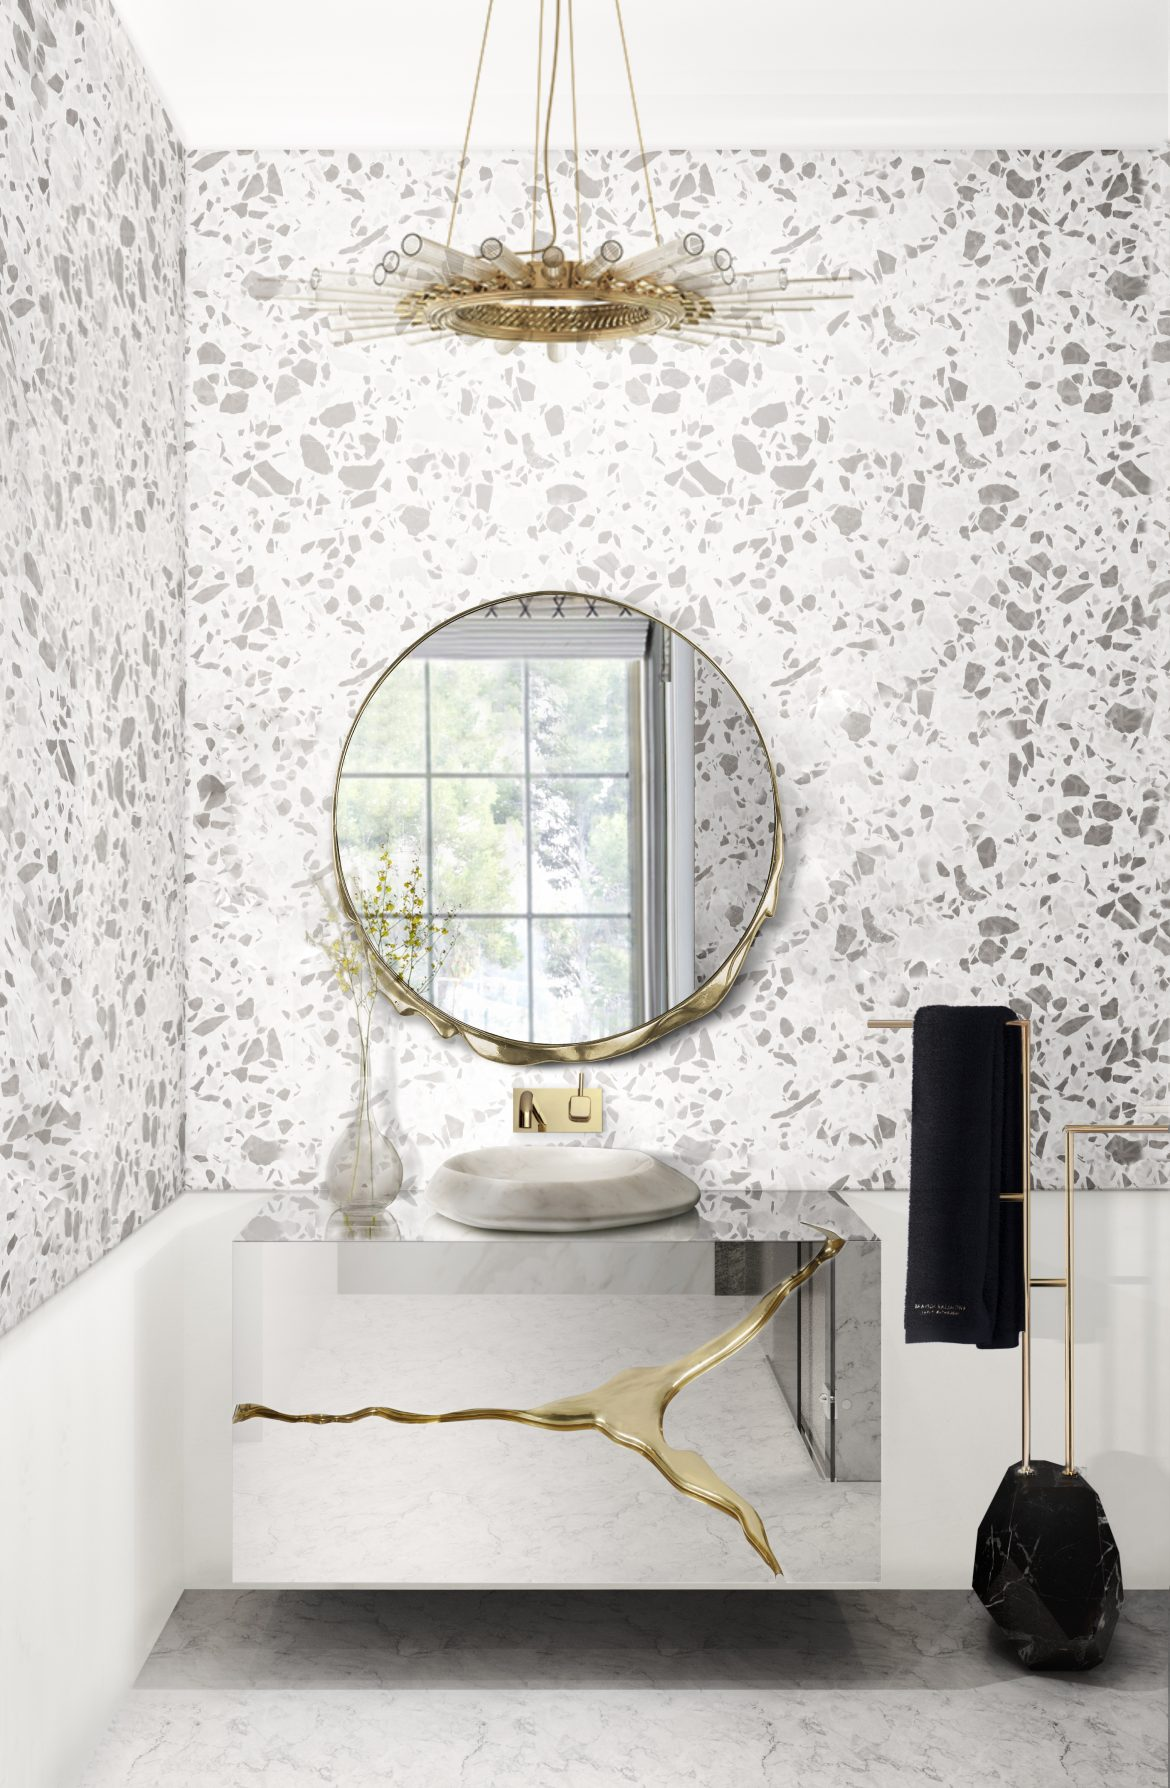 Terrazzo: The Design Trend Your Bathroom Needs terrazzo Terrazzo: The Design Trend Your Bathroom Needs terrazzo the design trend your bathroom needs 1